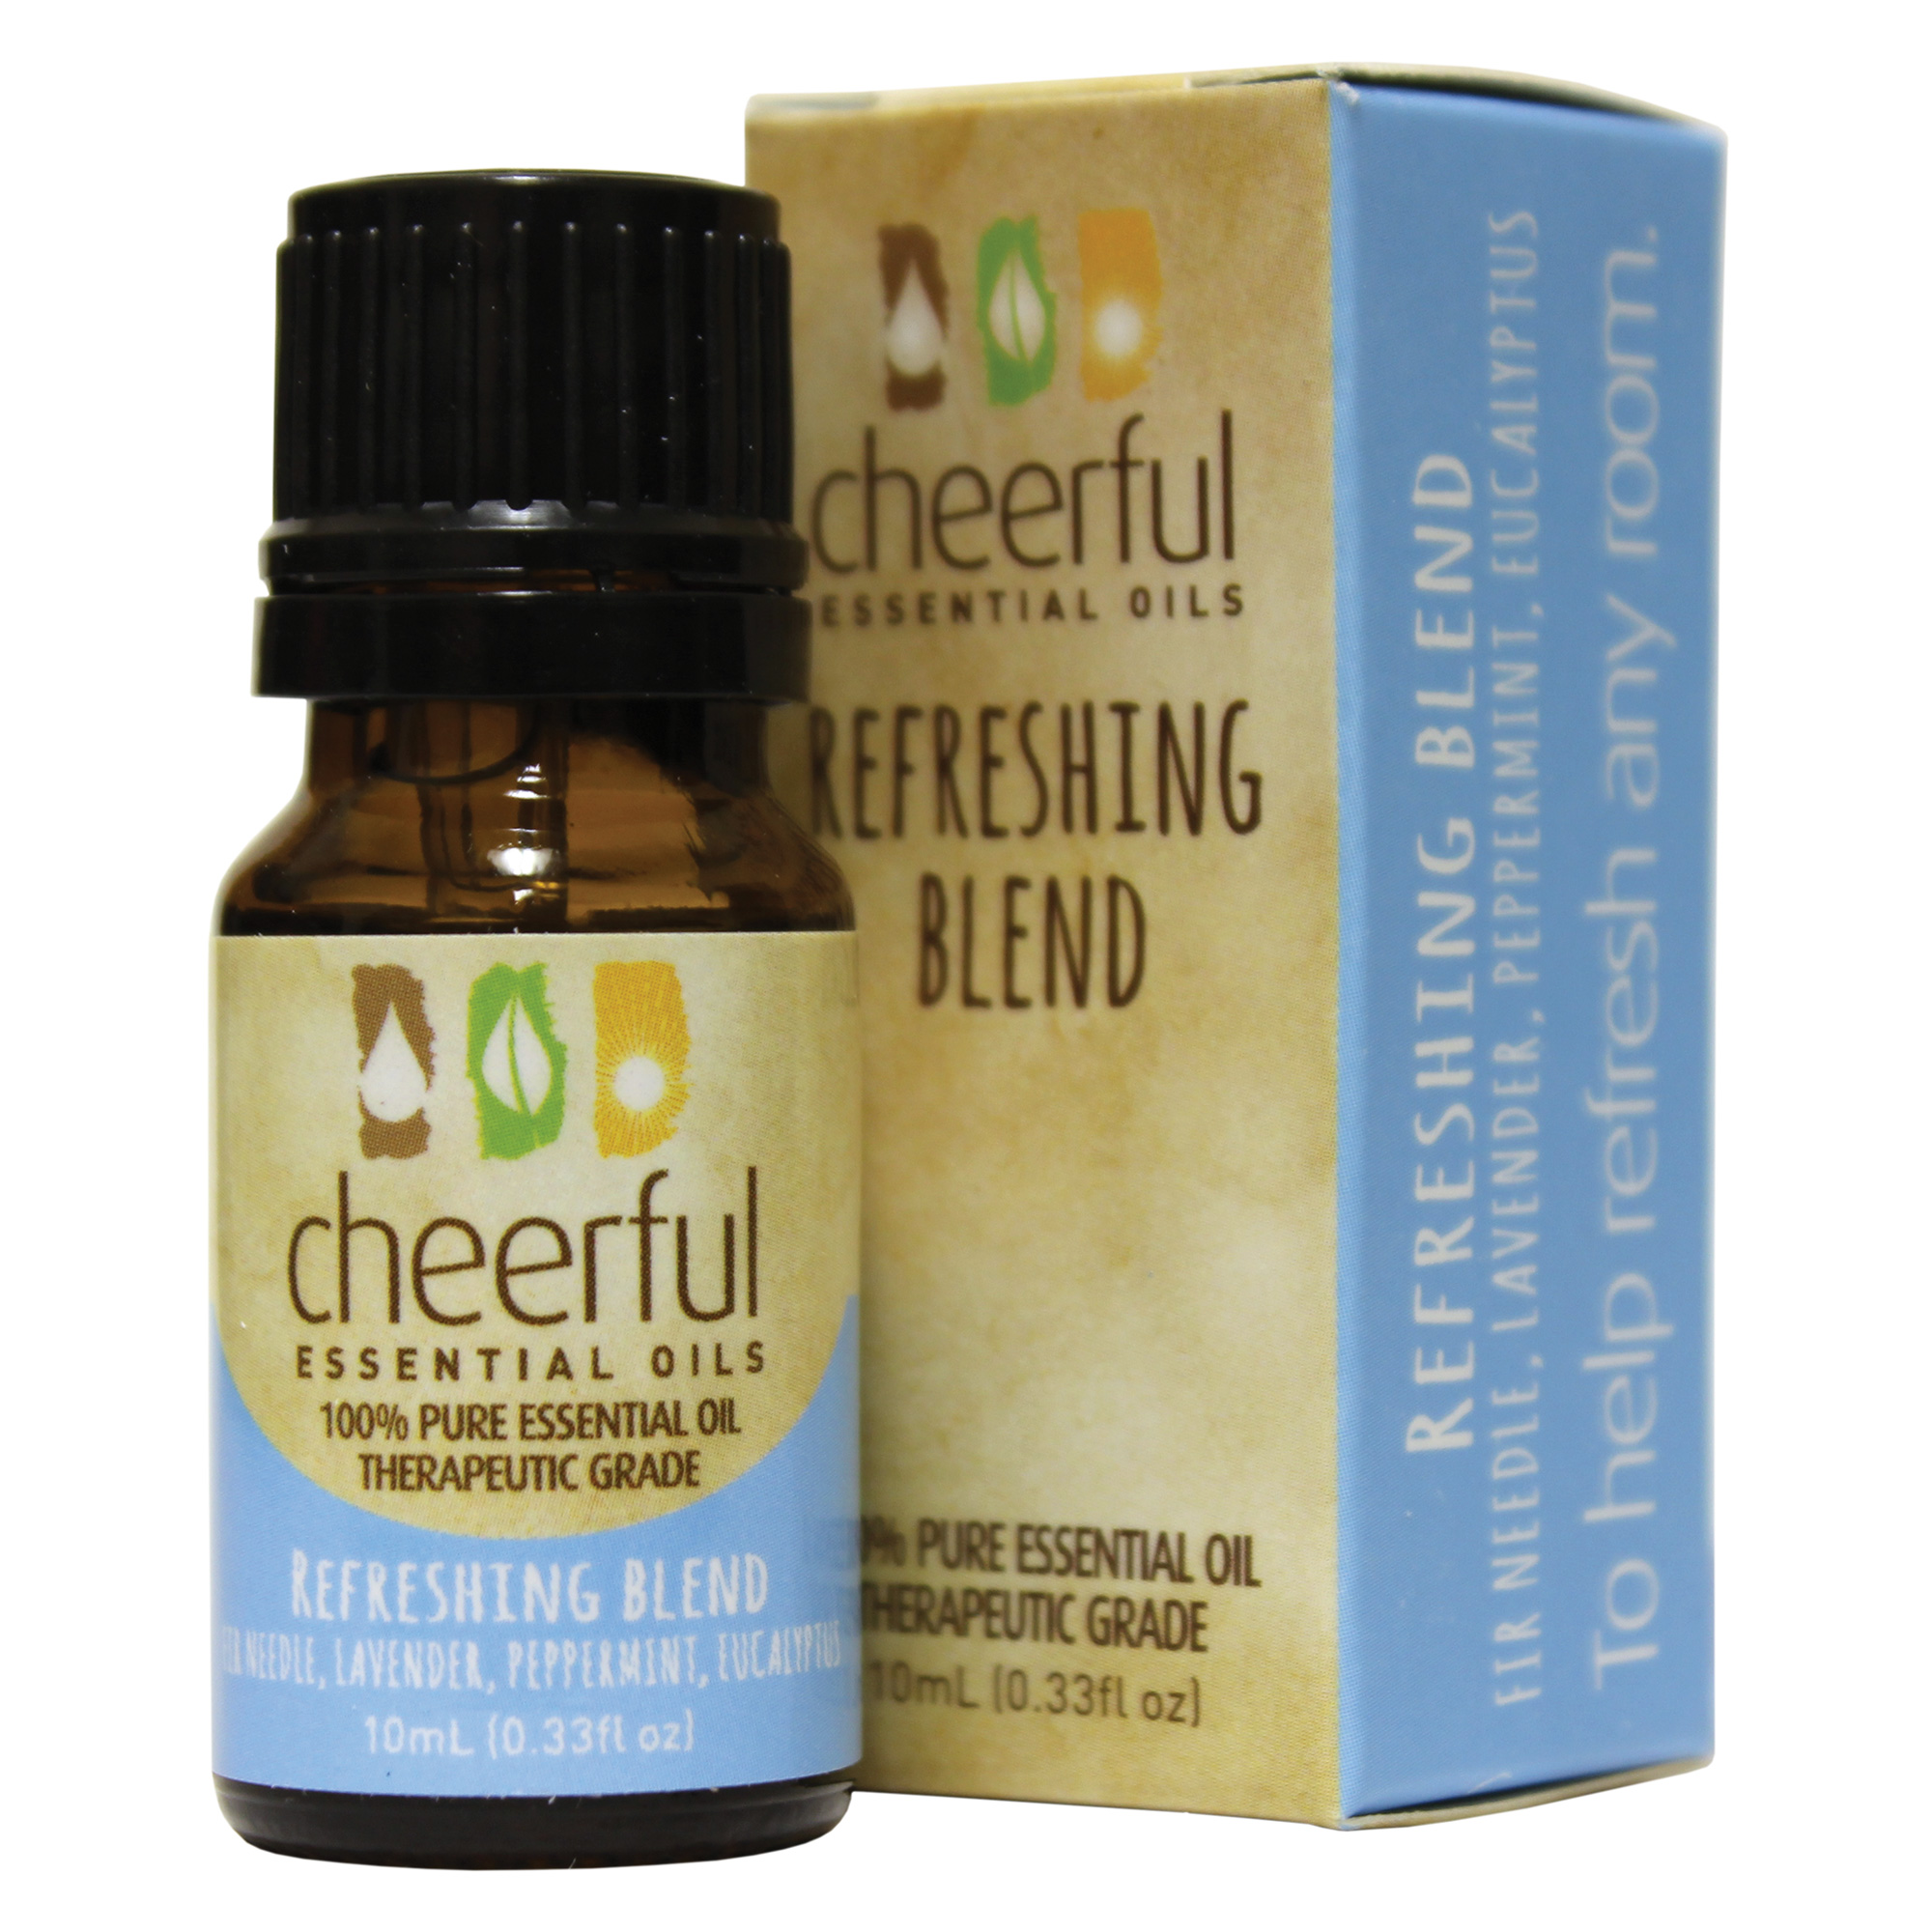 REFRESHING BLEND ESSENTIAL OIL 10 ML UPC# 674623018225